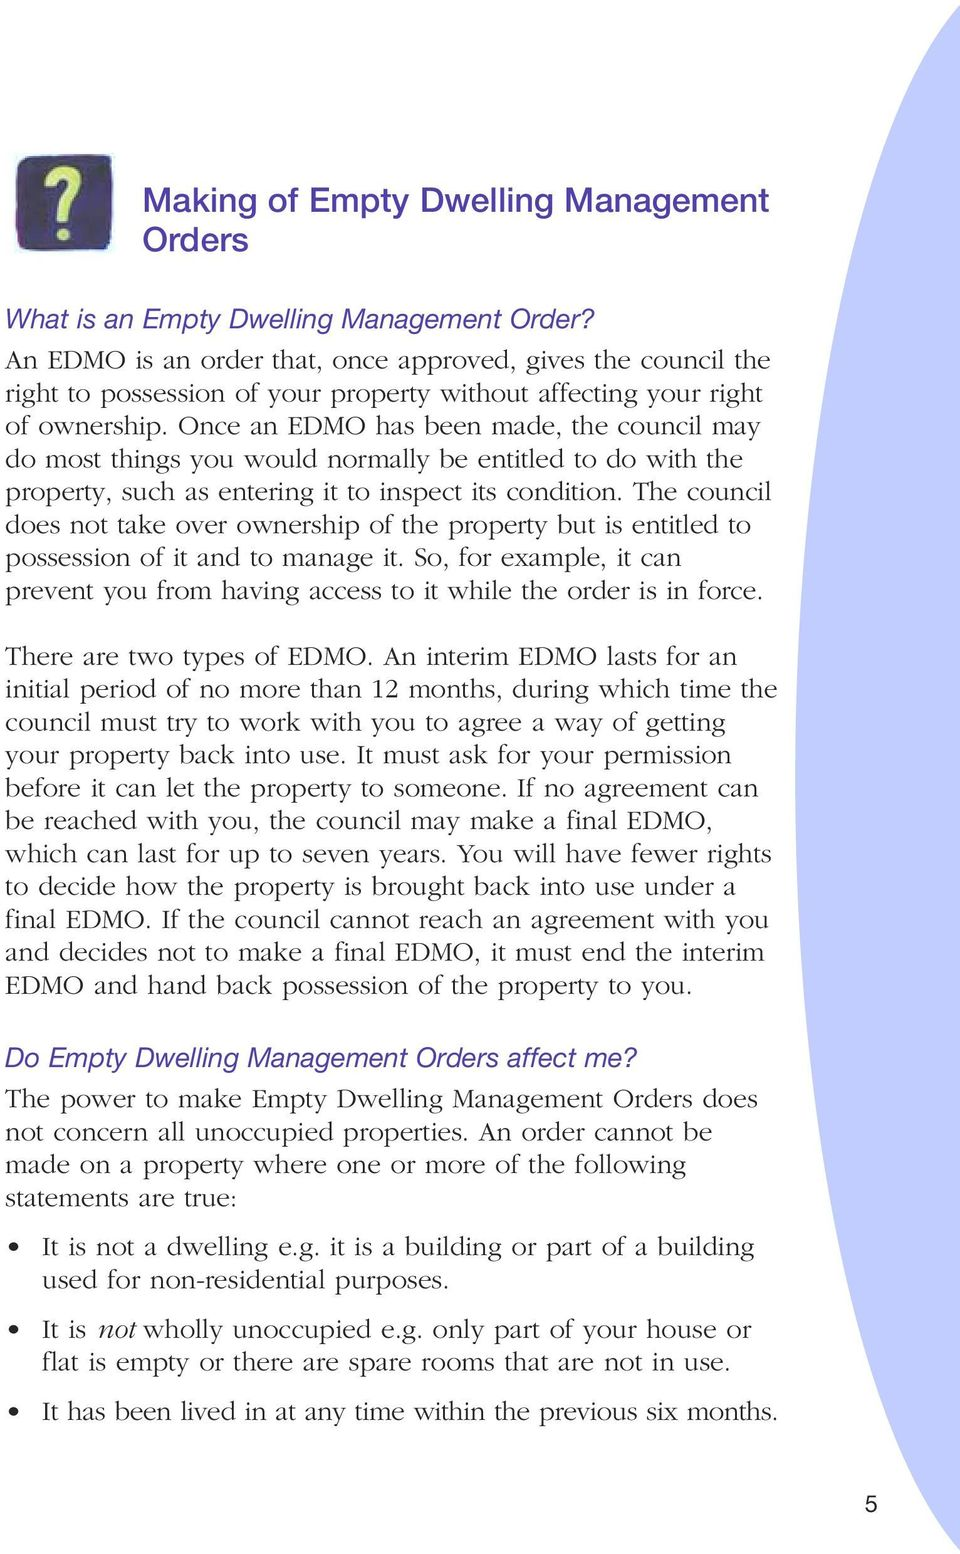 Once an EDMO has been made, the council may do most things you would normally be entitled to do with the property, such as entering it to inspect its condition.